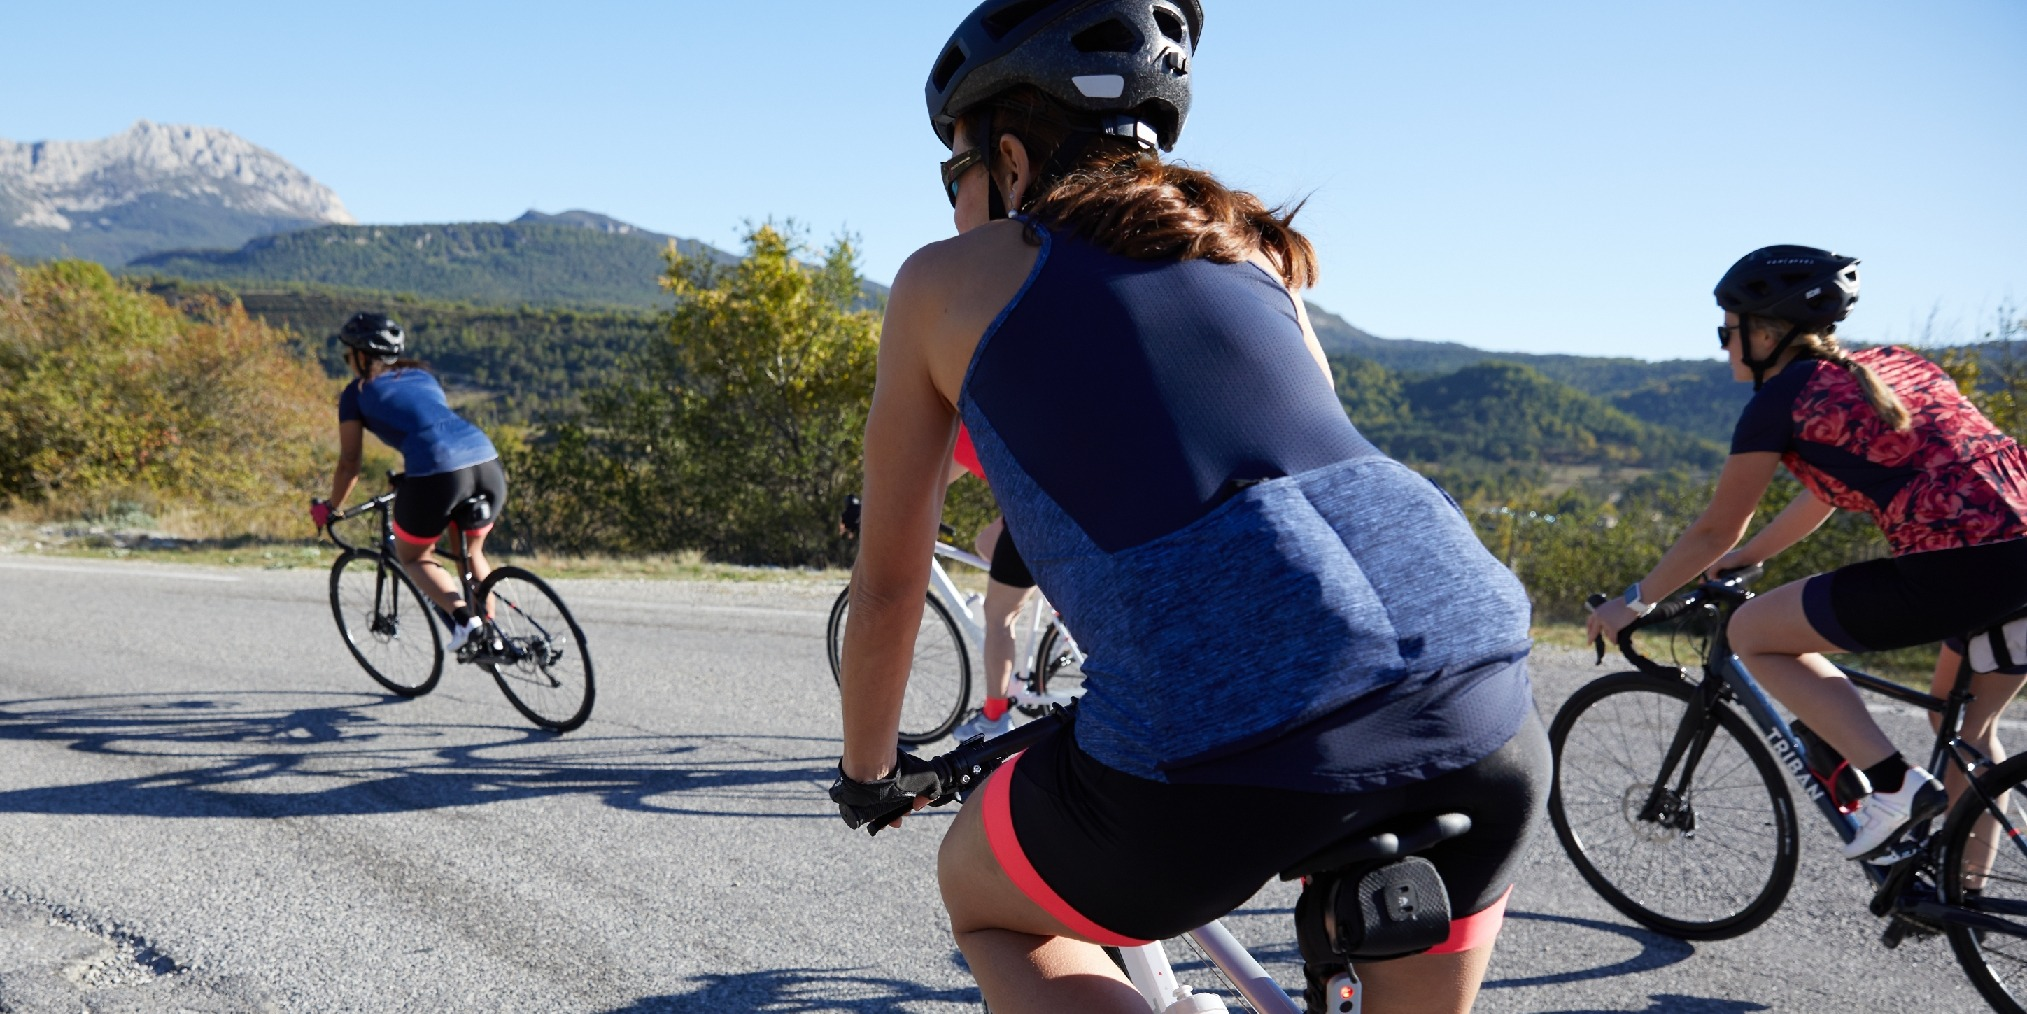 What Nutritional & Physical Training Can Help With Road Cycling For Beginners?